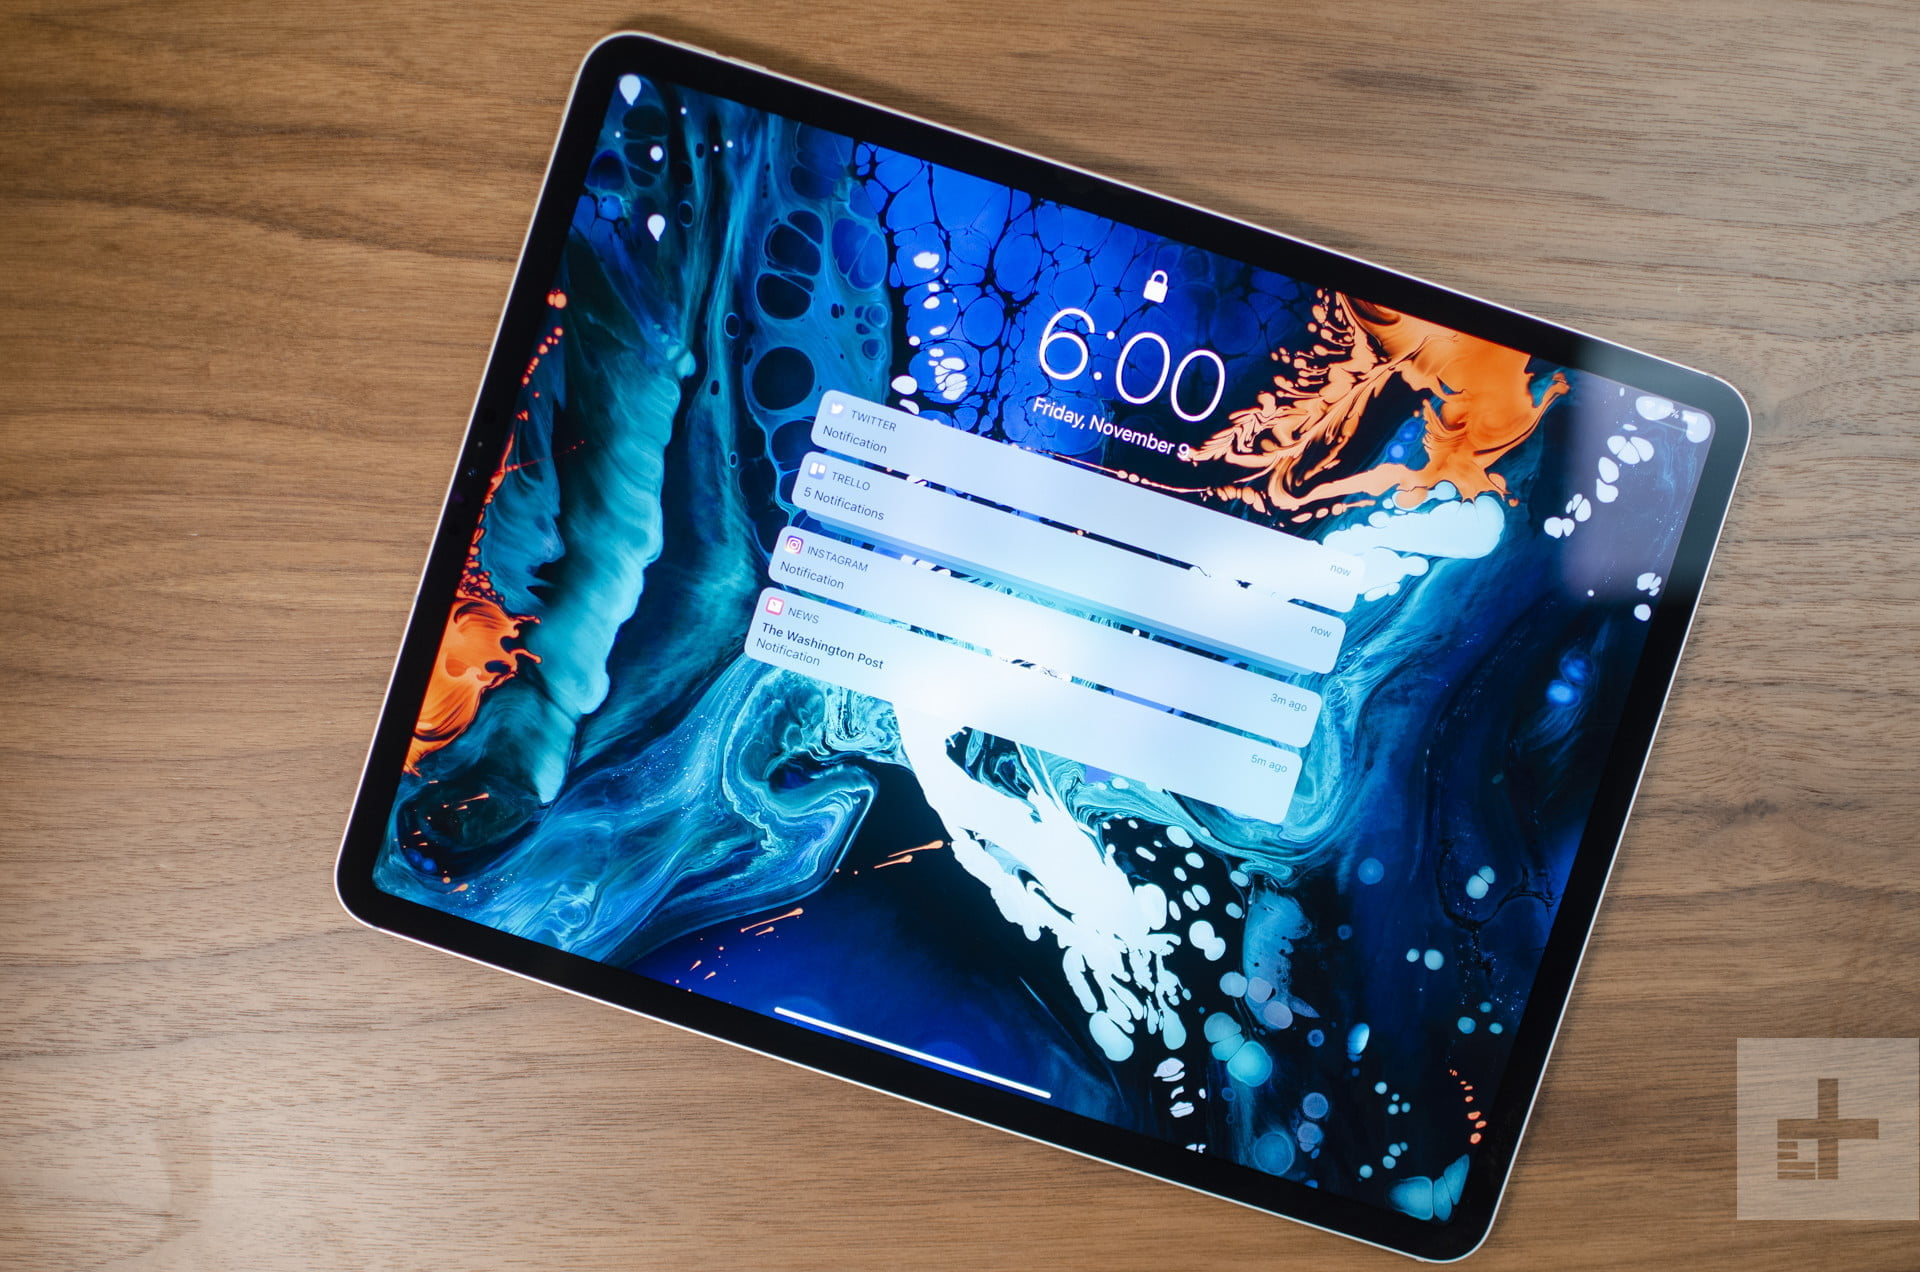 iPad Pro (2018) Review: The Best Tablet Money Can Buy ...